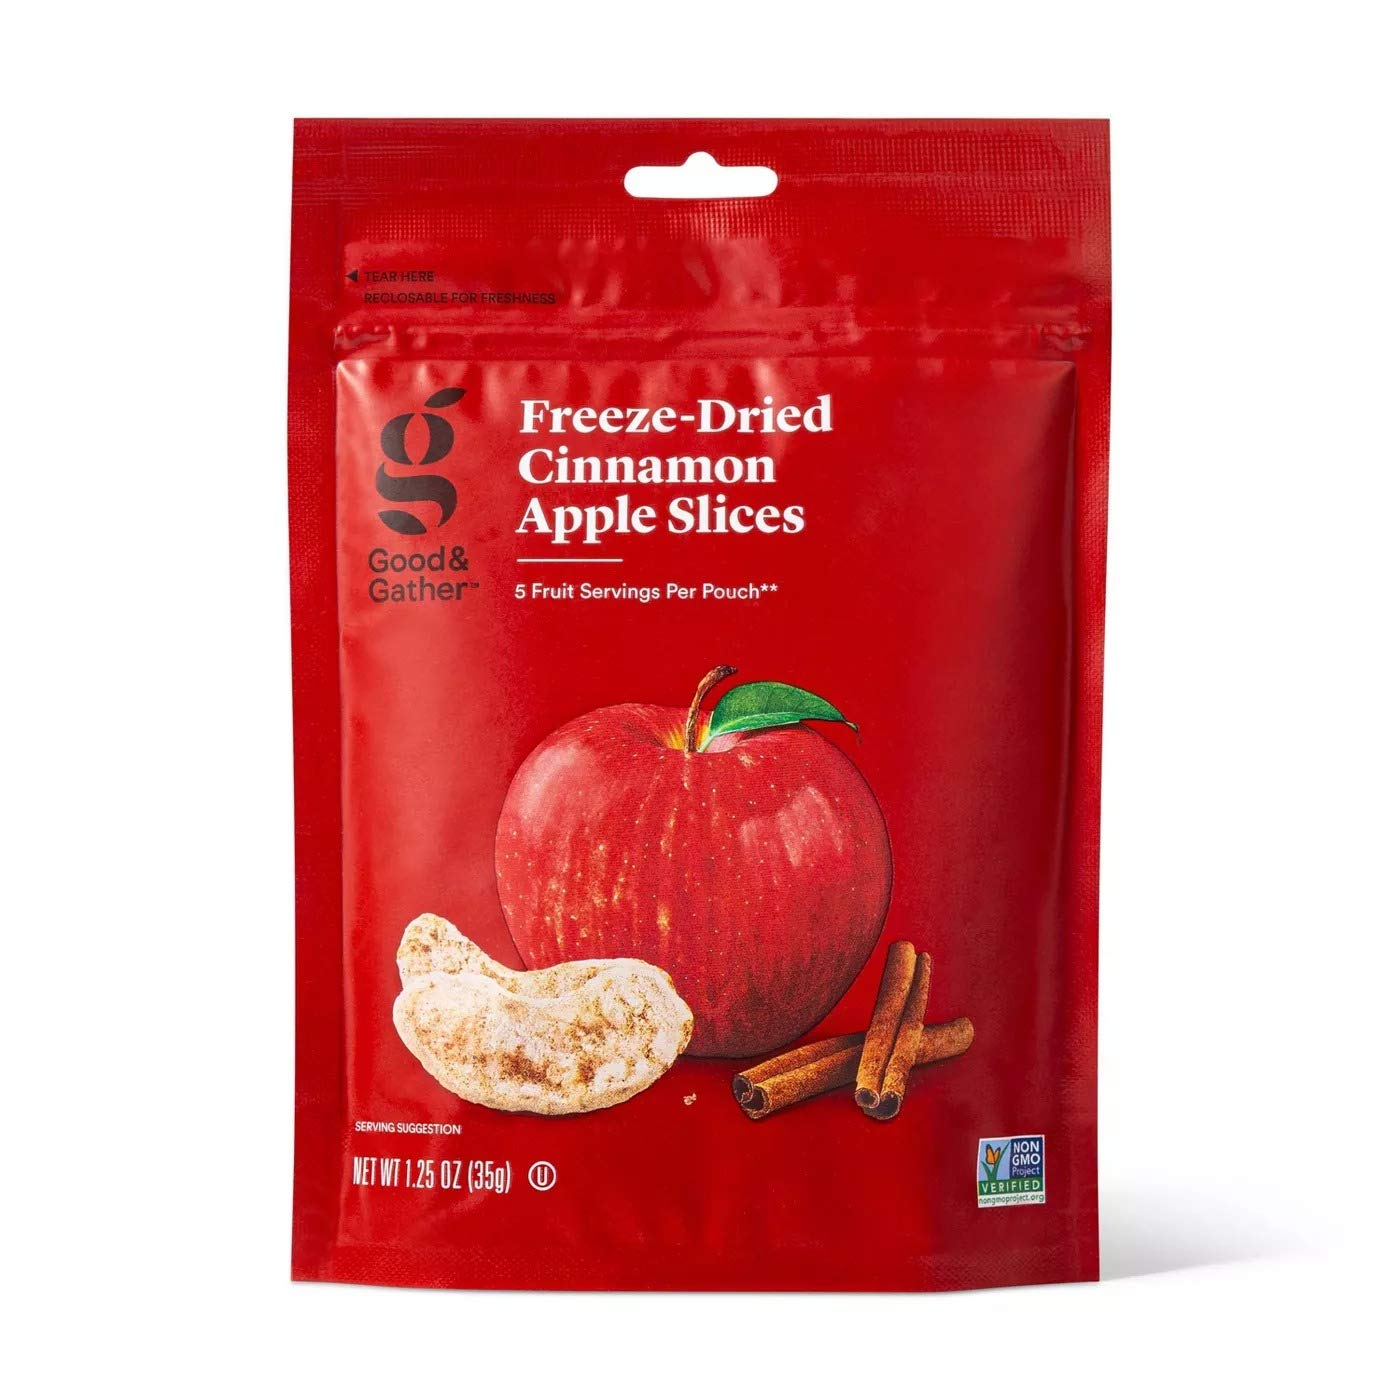 Good & Gather- Freeze Dried Cinnamon Apple Slices - 1.25oz